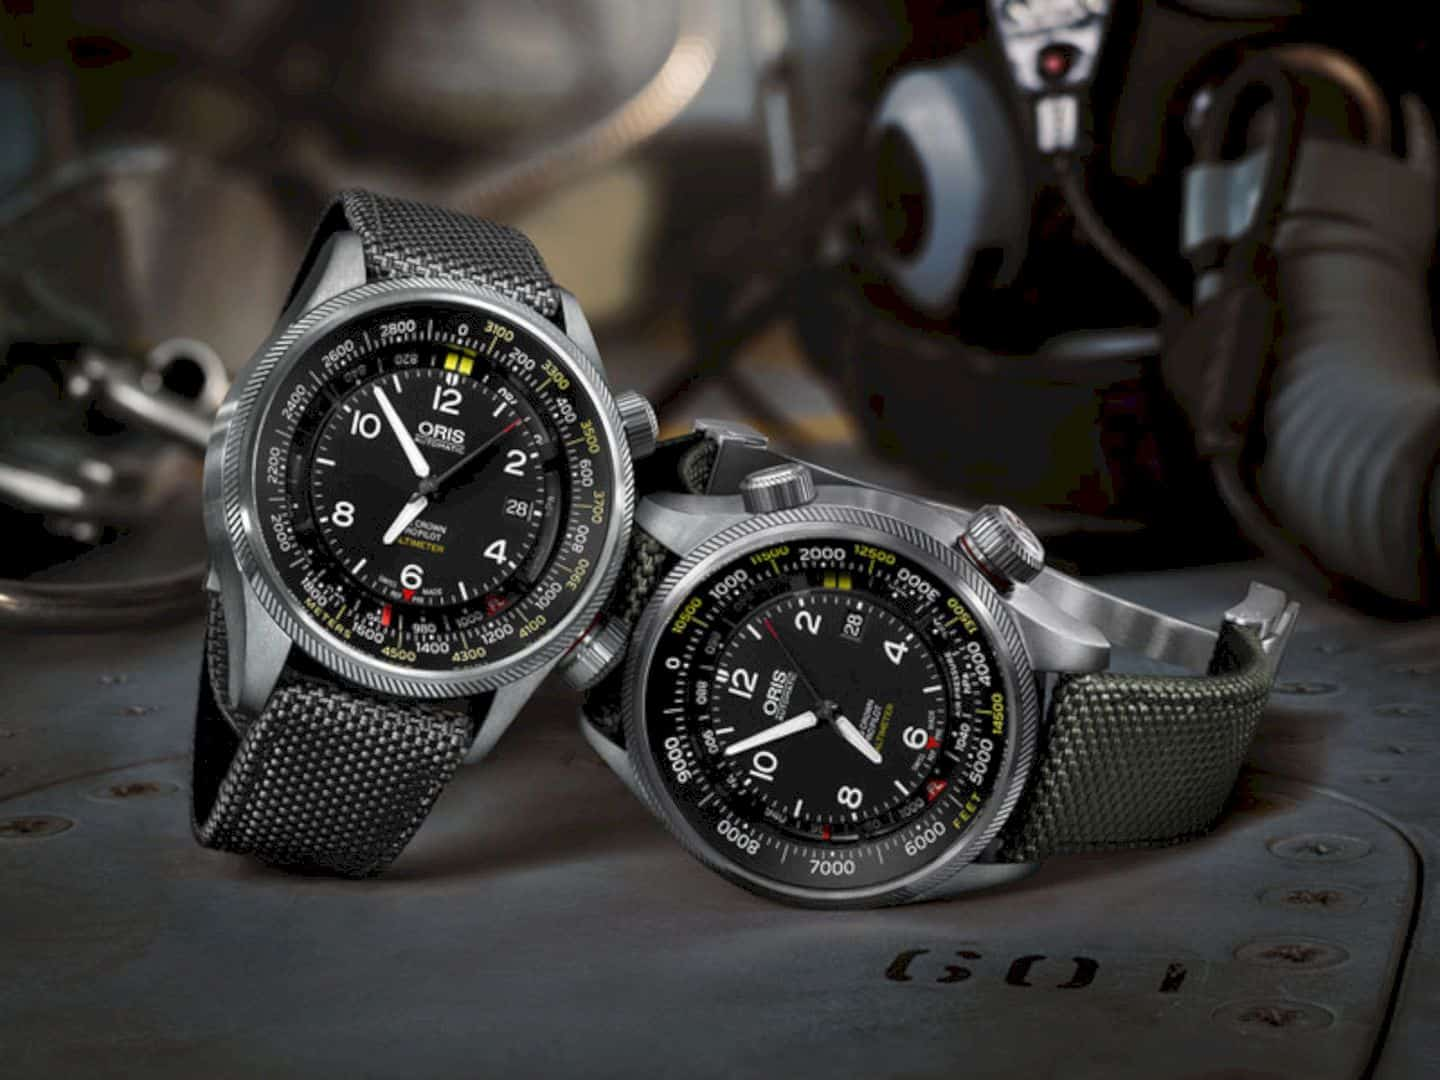 Oris Big Crown Propilot Altimeter With Feet Scale 6